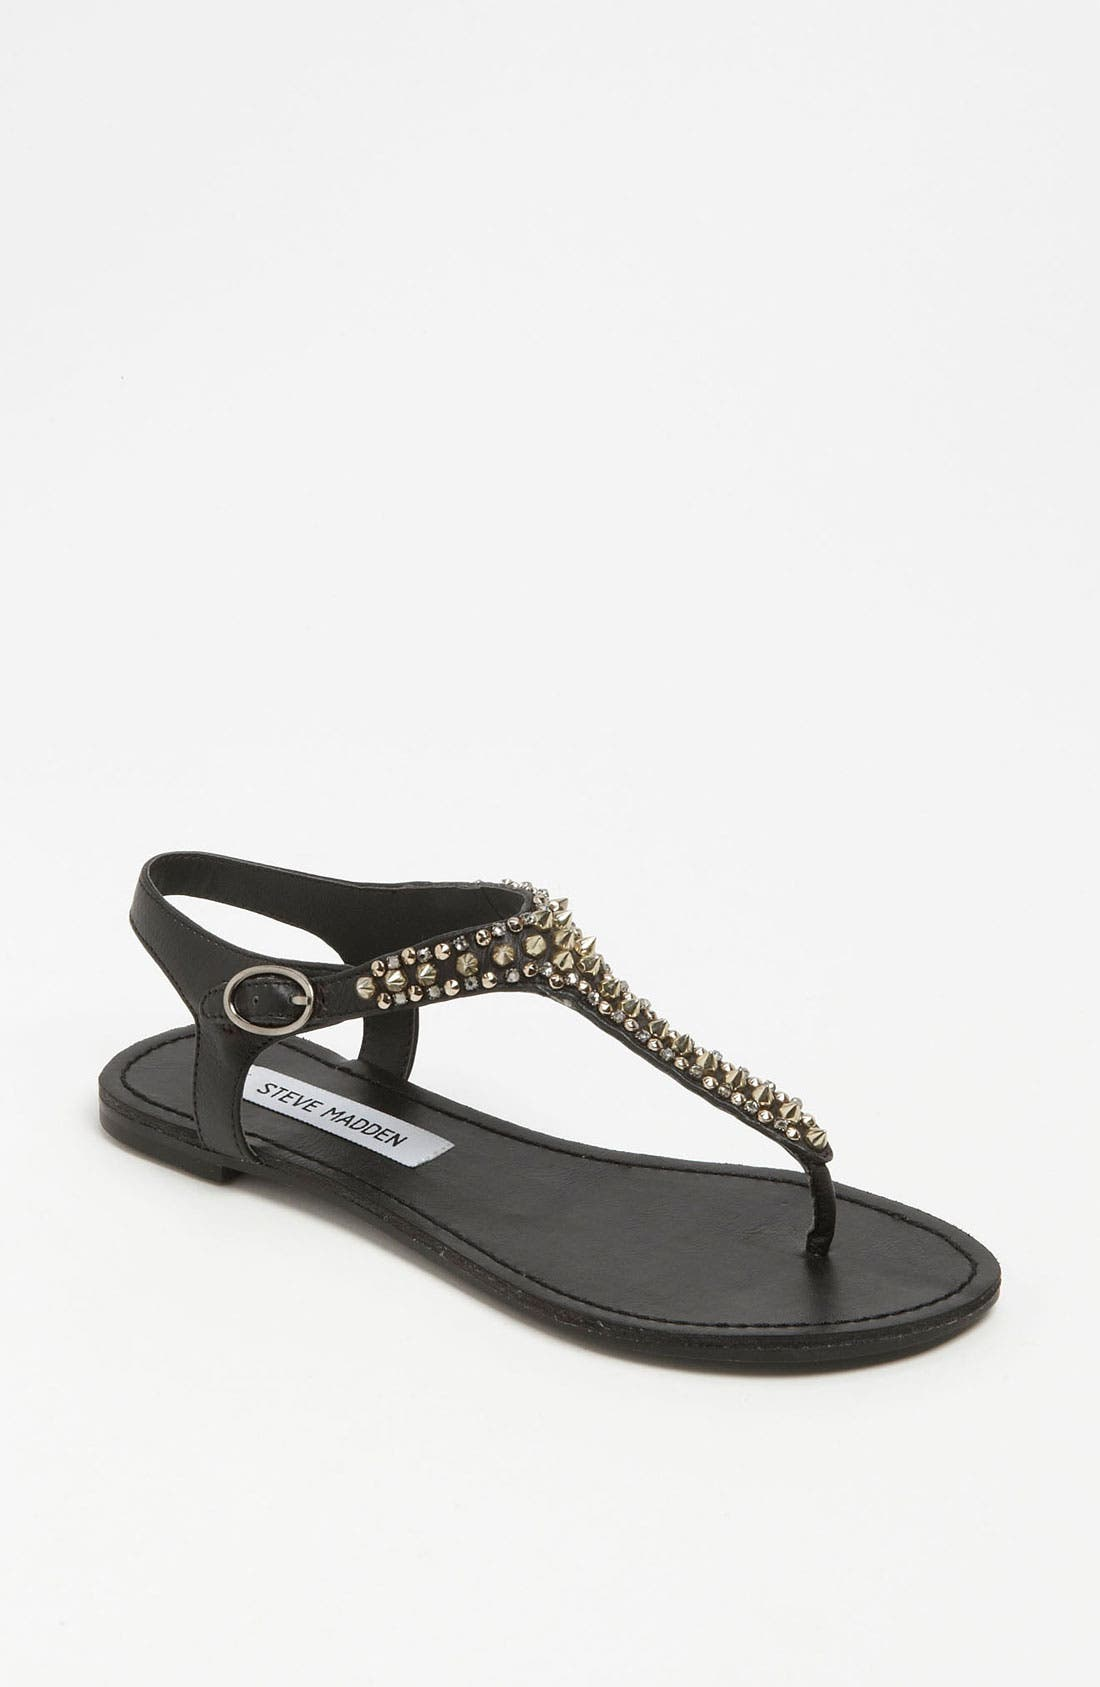 Alternate Image 1 Selected - Steve Madden 'Beyyond' Sandal